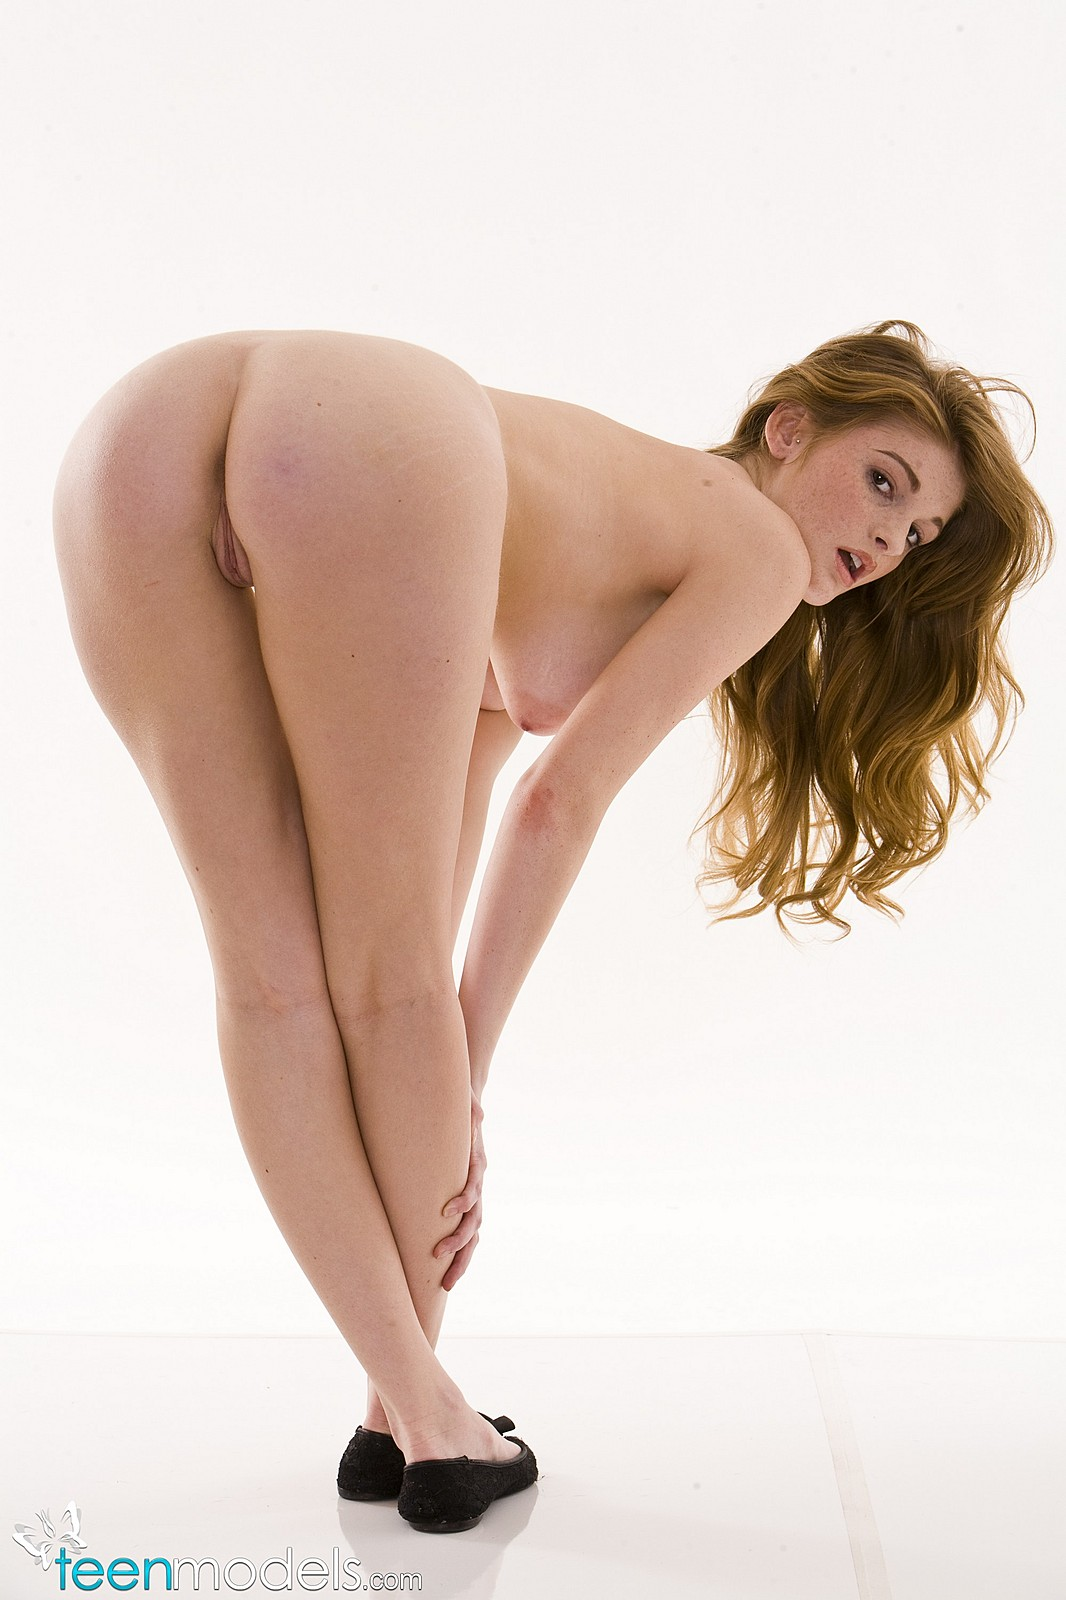 Footjob Cute Red Hair Naked